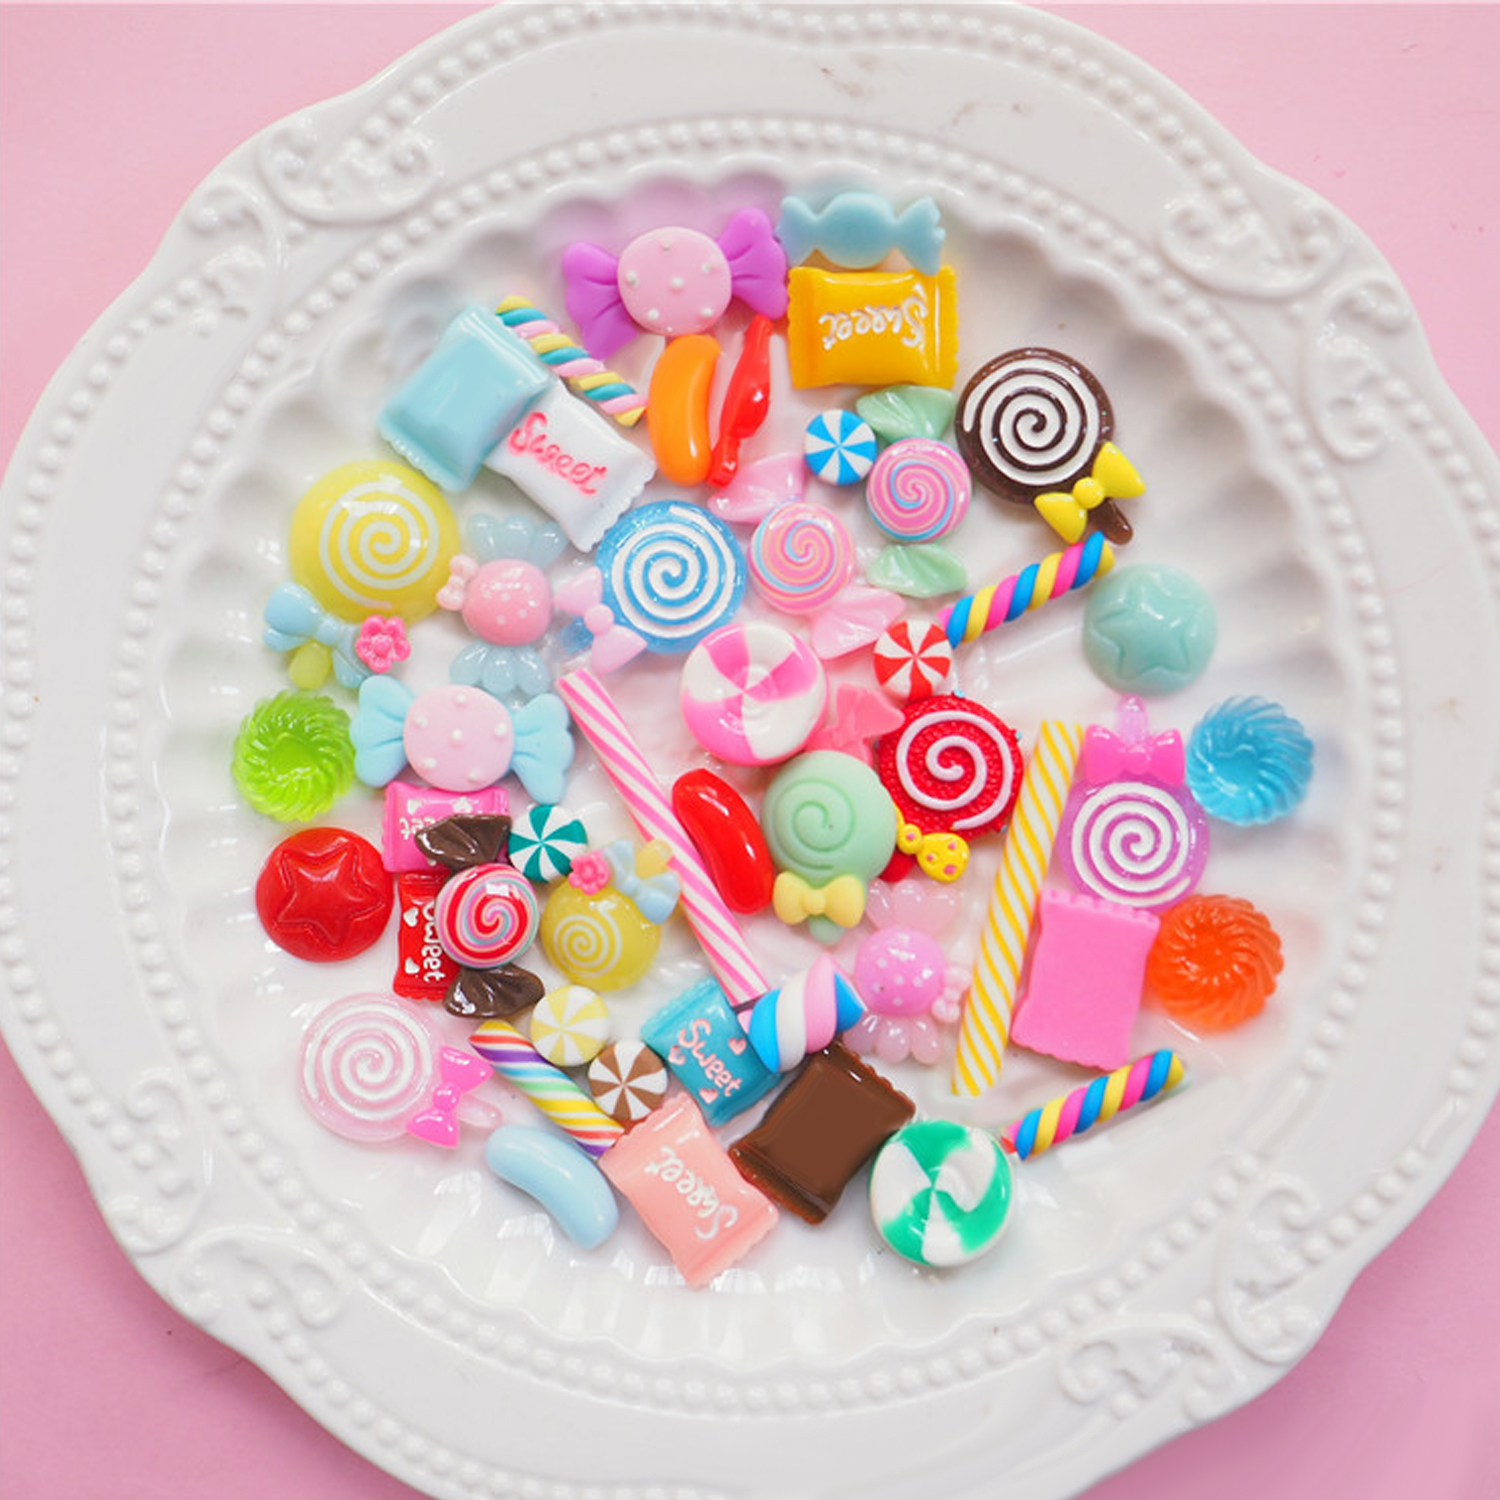 50Pcs Kawaii Funny Cute Resin Sweets Candy Food Slime Charms Ornaments Toys DIY Scrapbooking Crafts Party Home Decor Mix Style ice cream cart toy